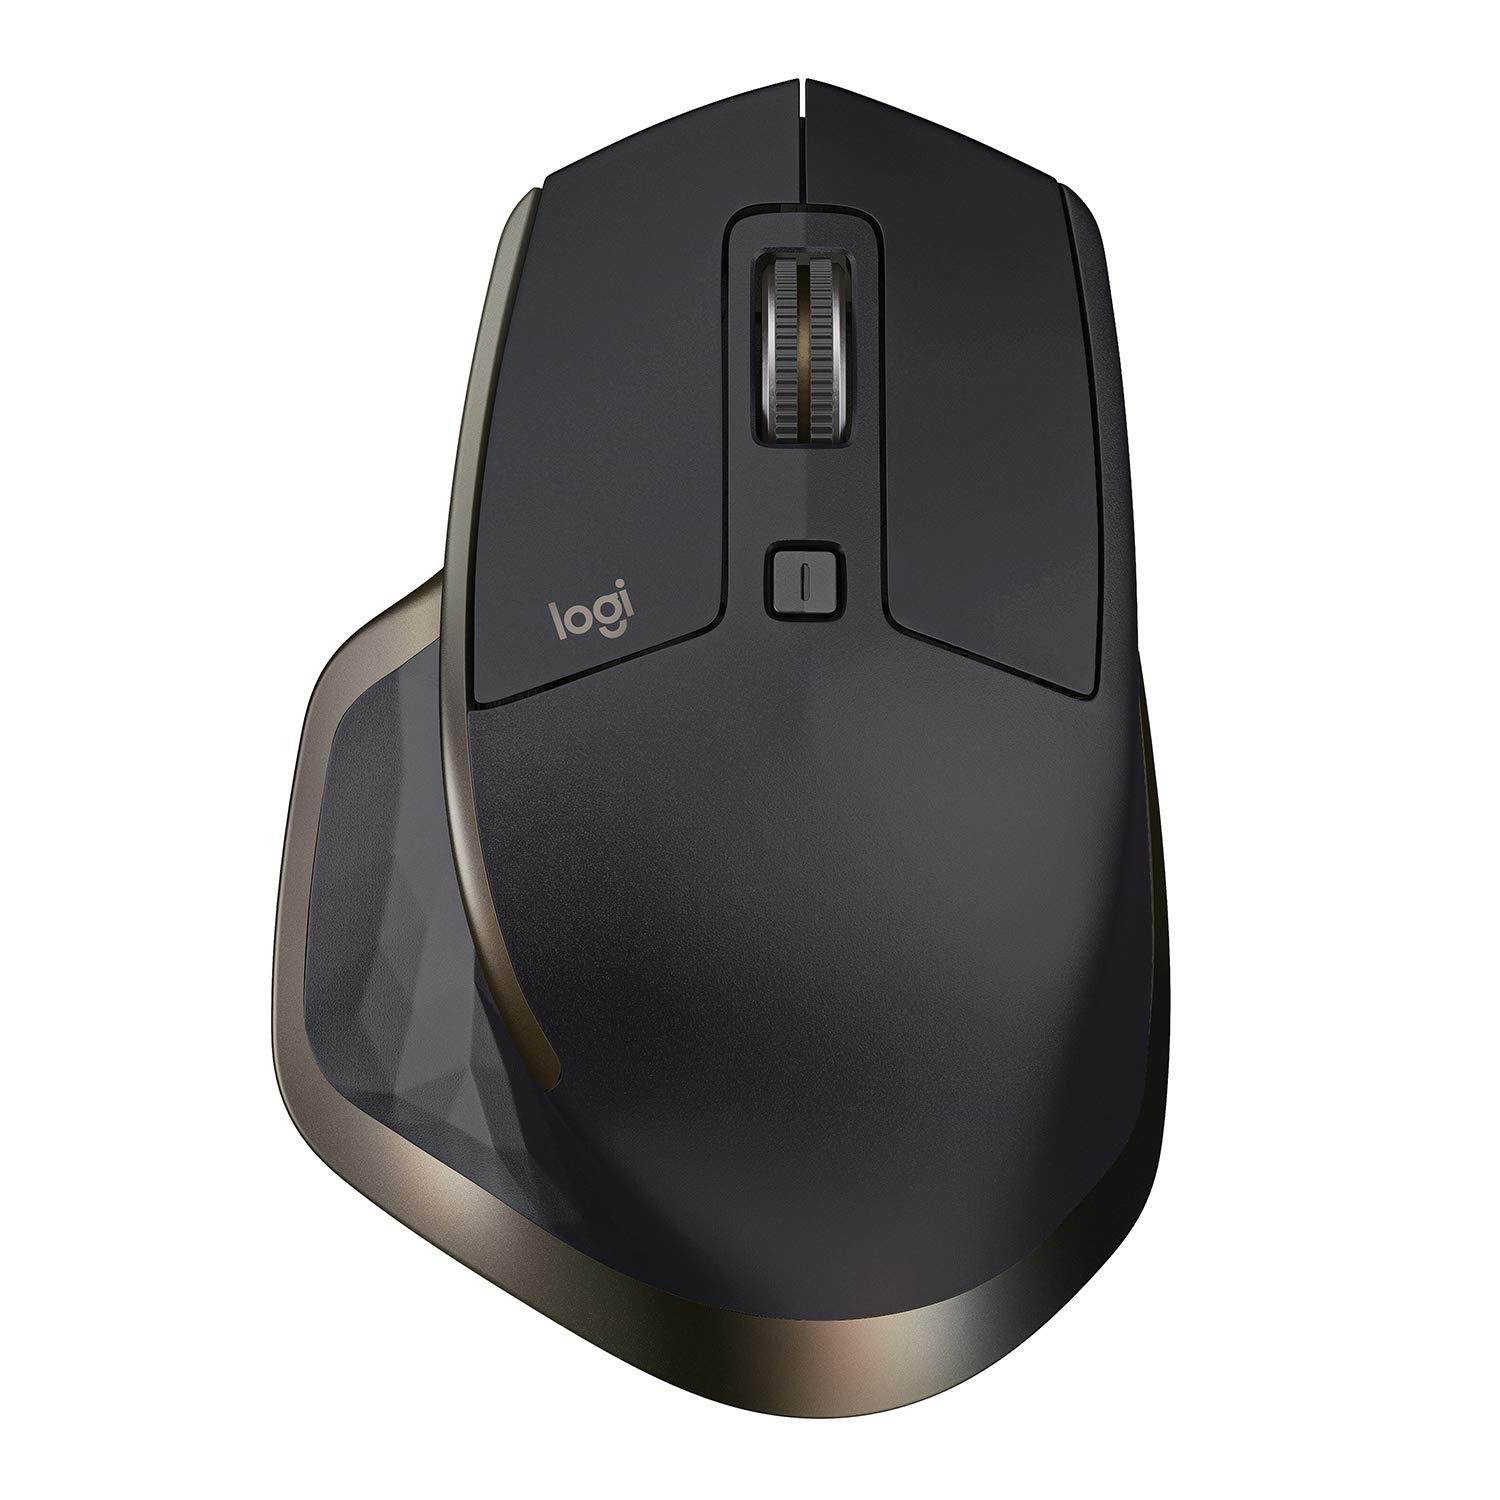 Logitech MX Master Wireless Mouse – High-Precision Sensor, Speed-Adaptive Scroll Wheel, Easy-Switch up to 3 Devices - Meteorite